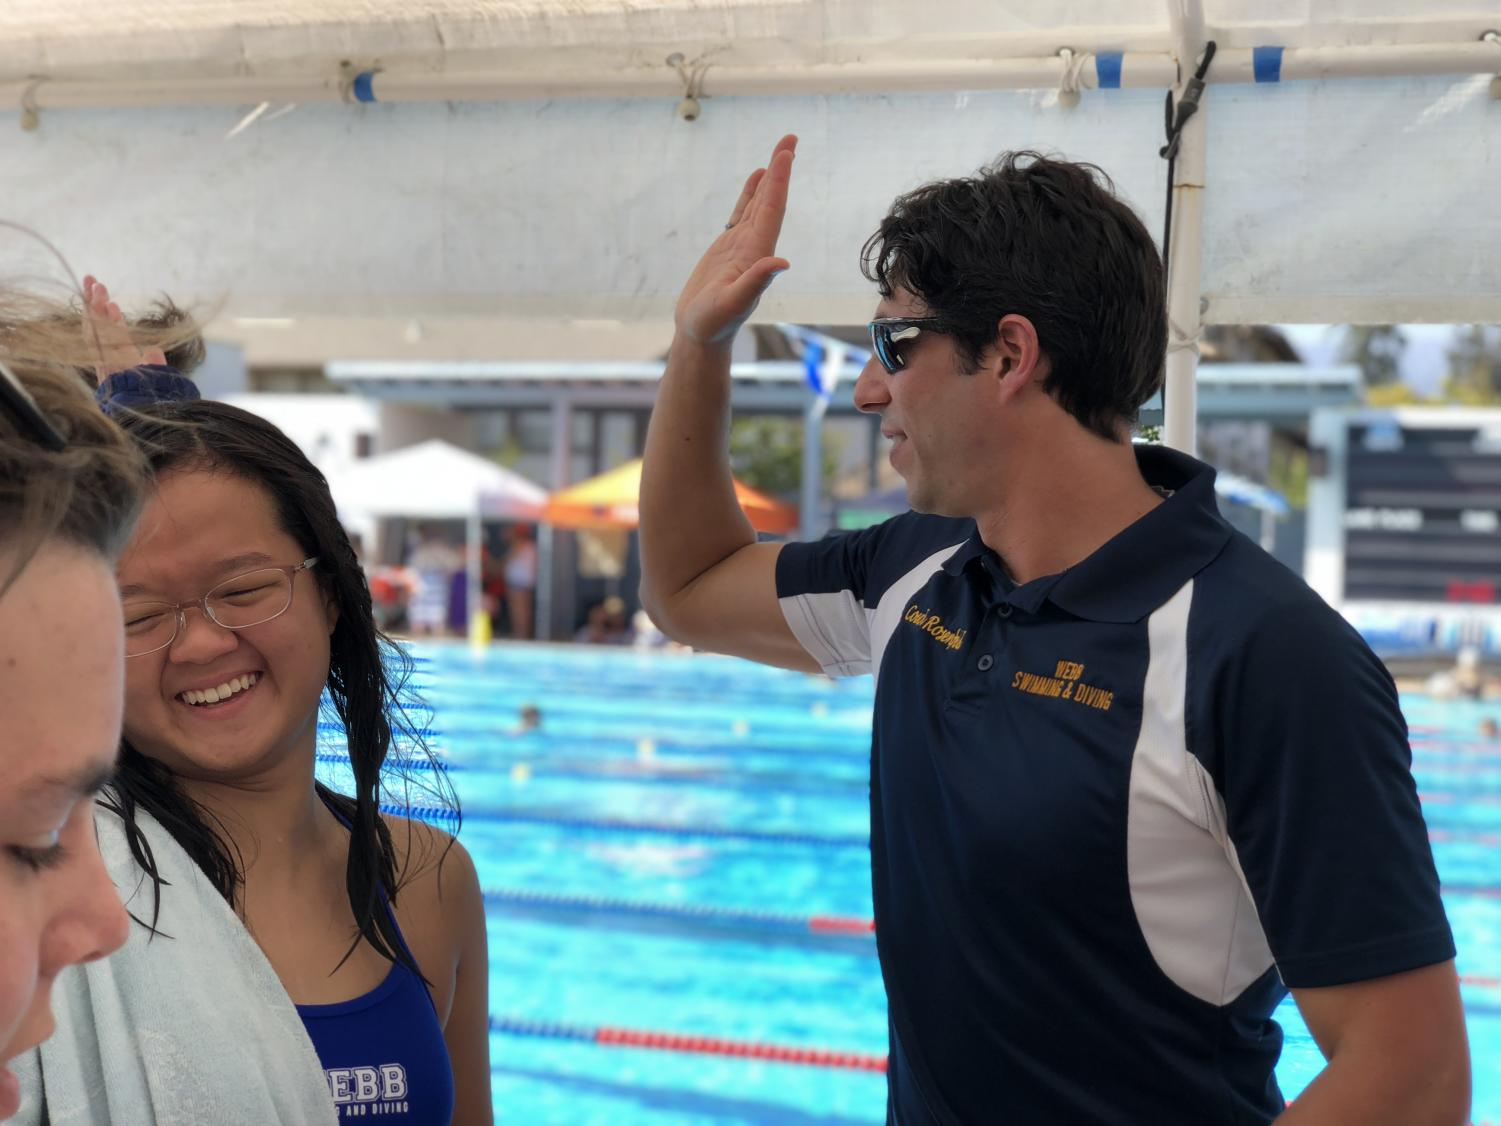 It's high fives all around for Webb swimmers!